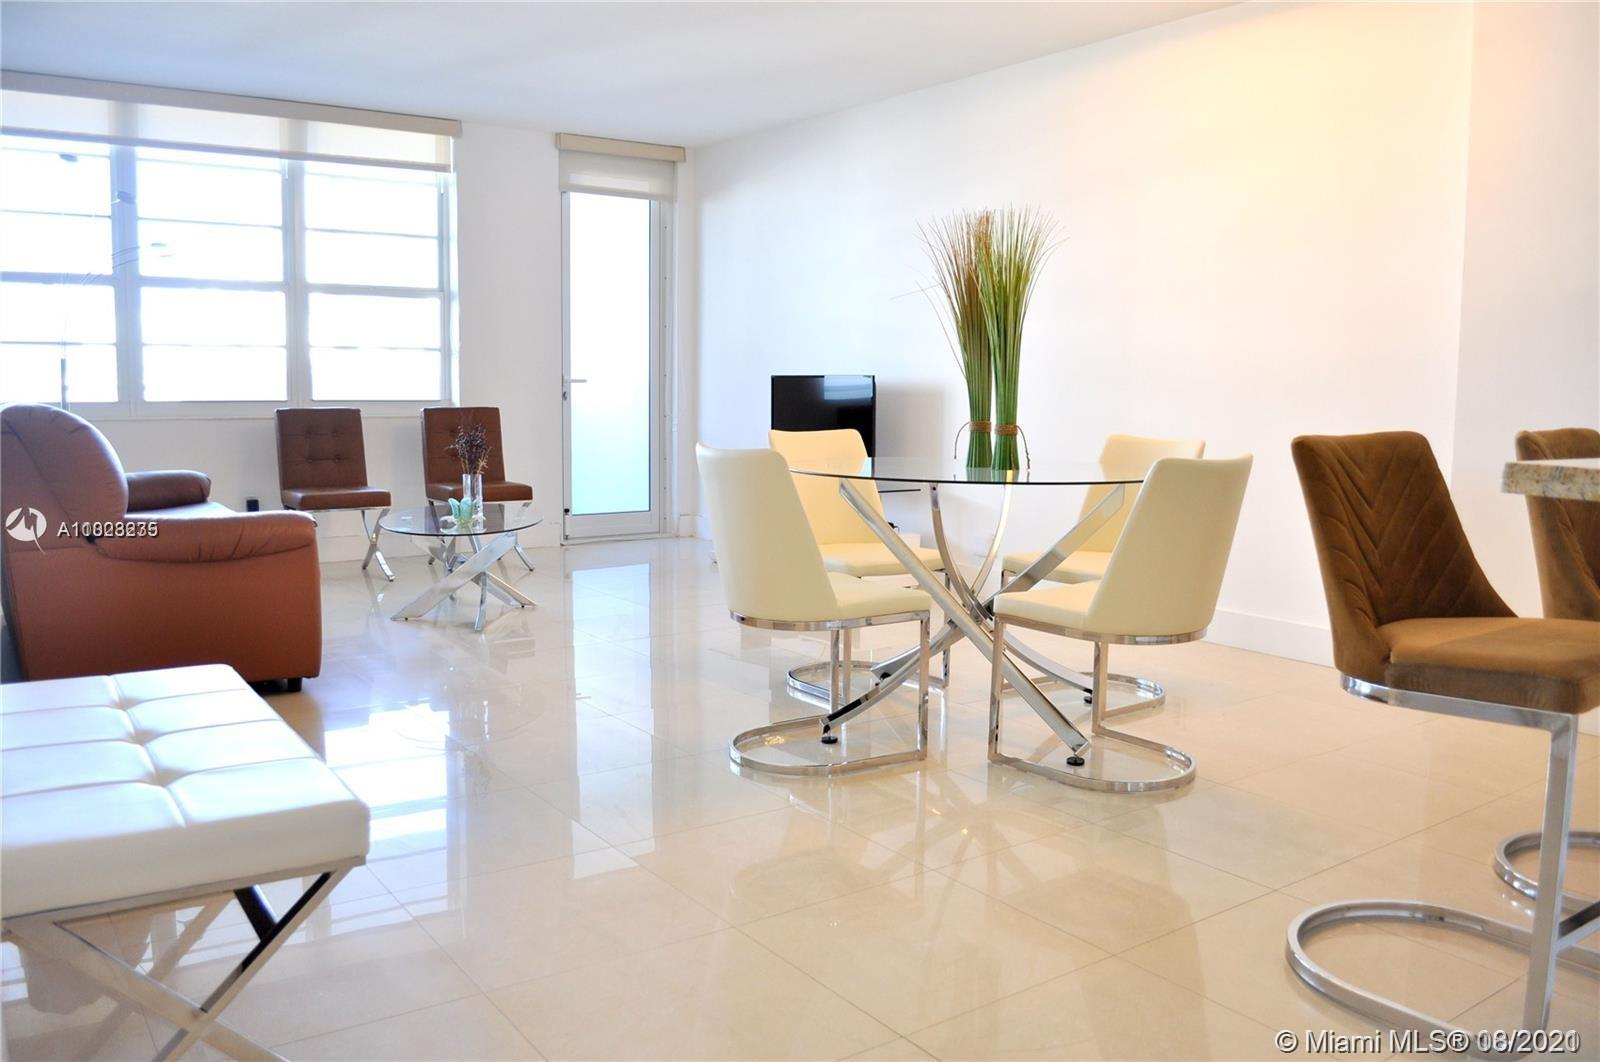 Beautiful one bedroom, ocean-view 845 sqft, condominium in the best location on South Beach. This is one of the best lines in the building and is the closest one-bedroom to the beach. Fully equipped kitchen, large living room with a huge open floor plan, open balcony, massive bathroom with shower,  100 Lincoln Road boasts brand new infinity pool and gym, community room, and 24-hour concierge and security. One free valet parking space is included and completes this beachfront home. Also, there is a liberal rental policy that allows the unit to be rented once per month. A must see!*CAN BE RENTED 12 TIMES A YEAR** SPECIAL ASSESTMENT UNTIL MARCH 2024**